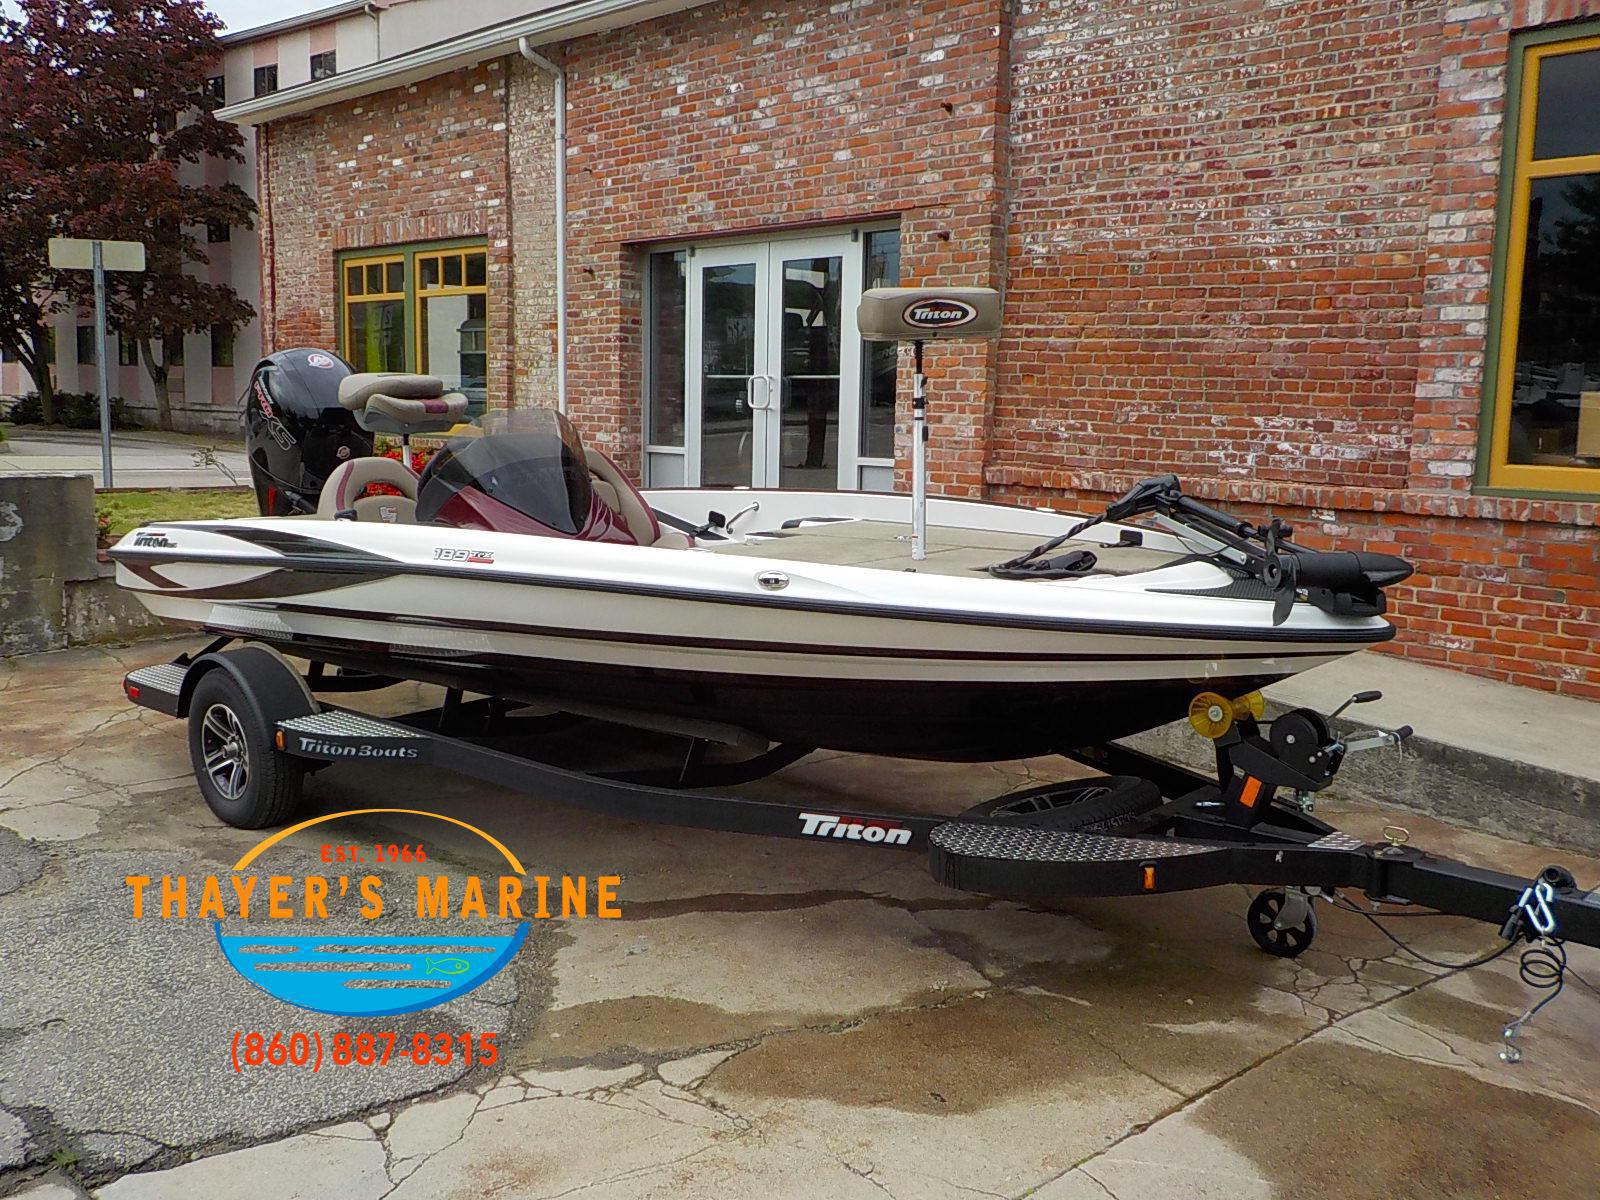 Inventory from Pro Craft and Triton Boats Thayer's Marine